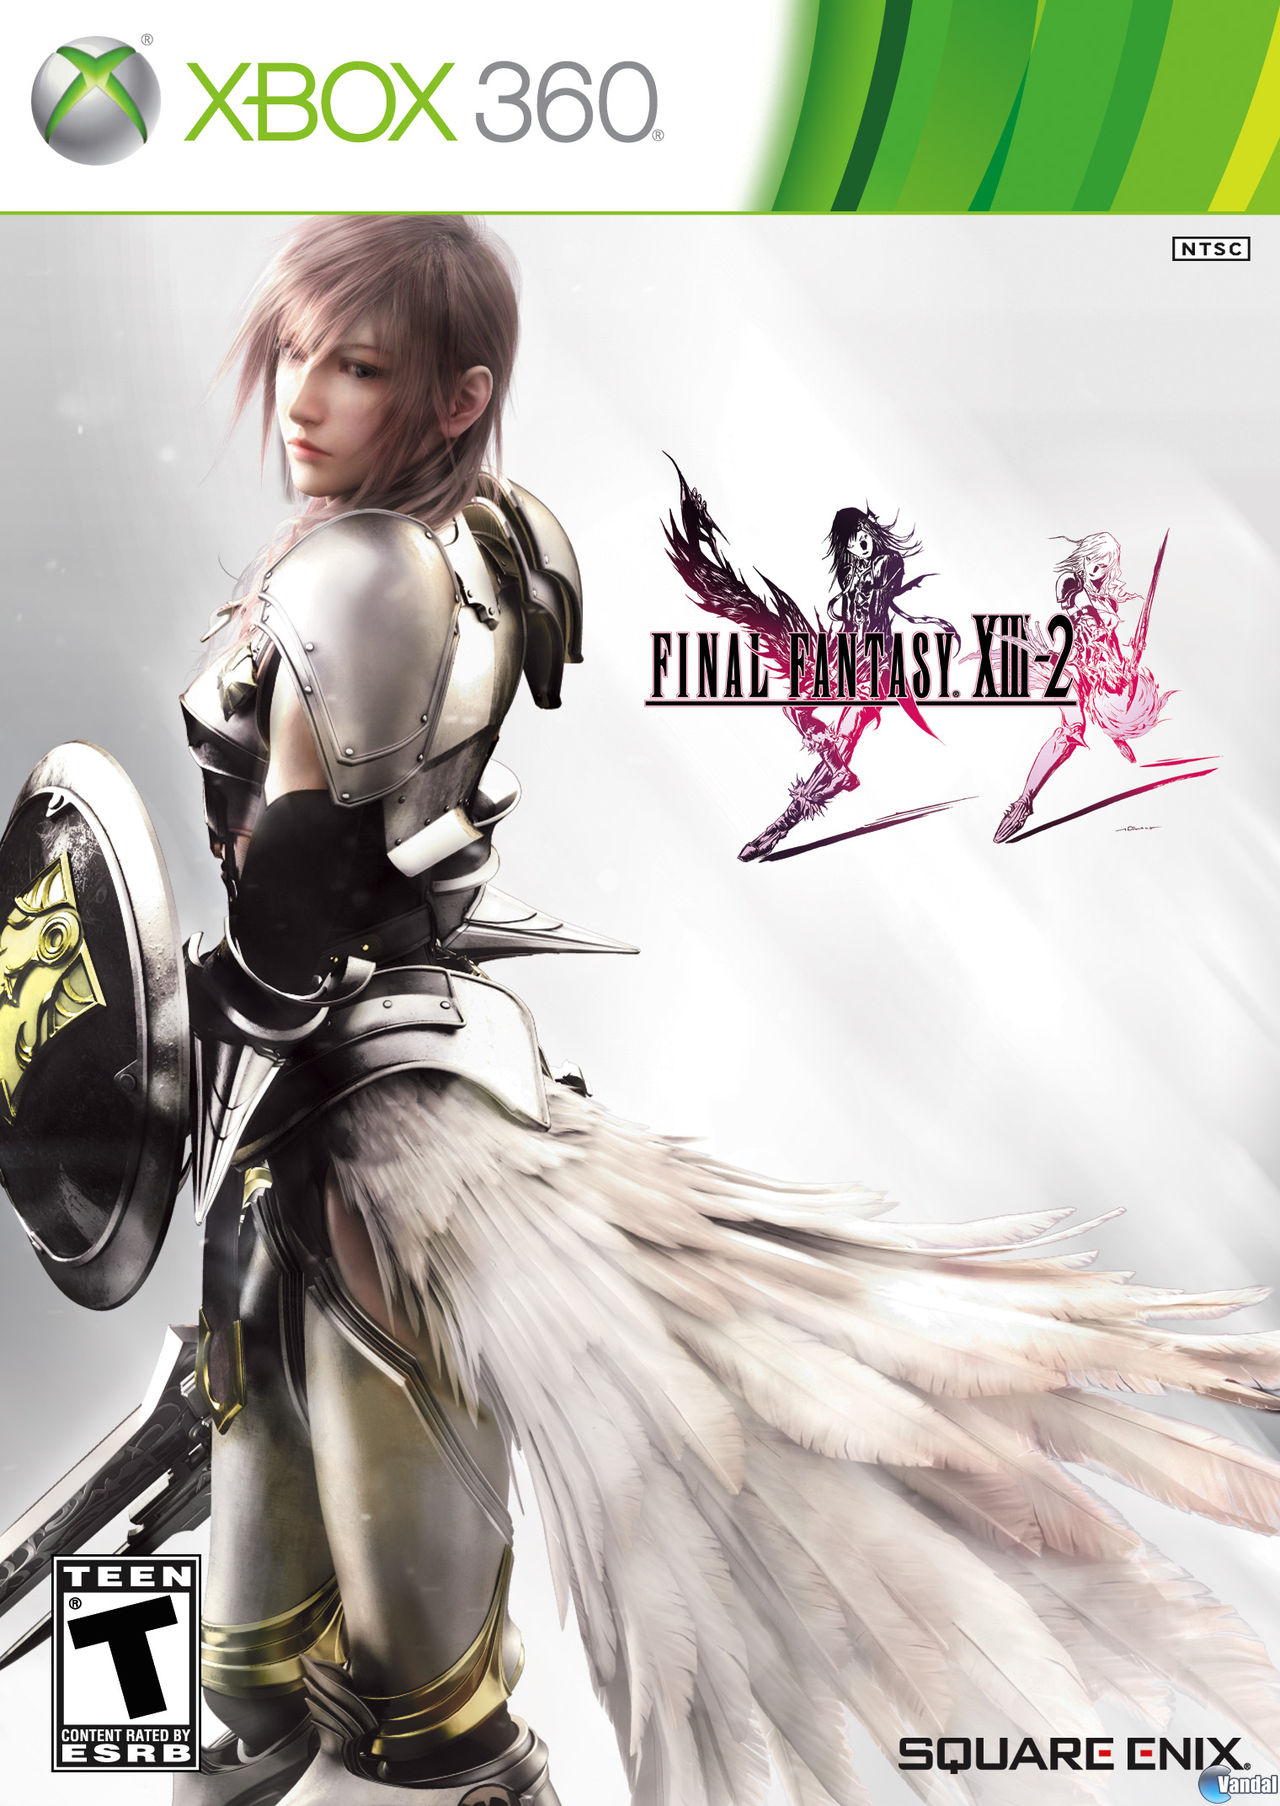 Lightning protagonizar la portada de Final Fantasy XIII-2